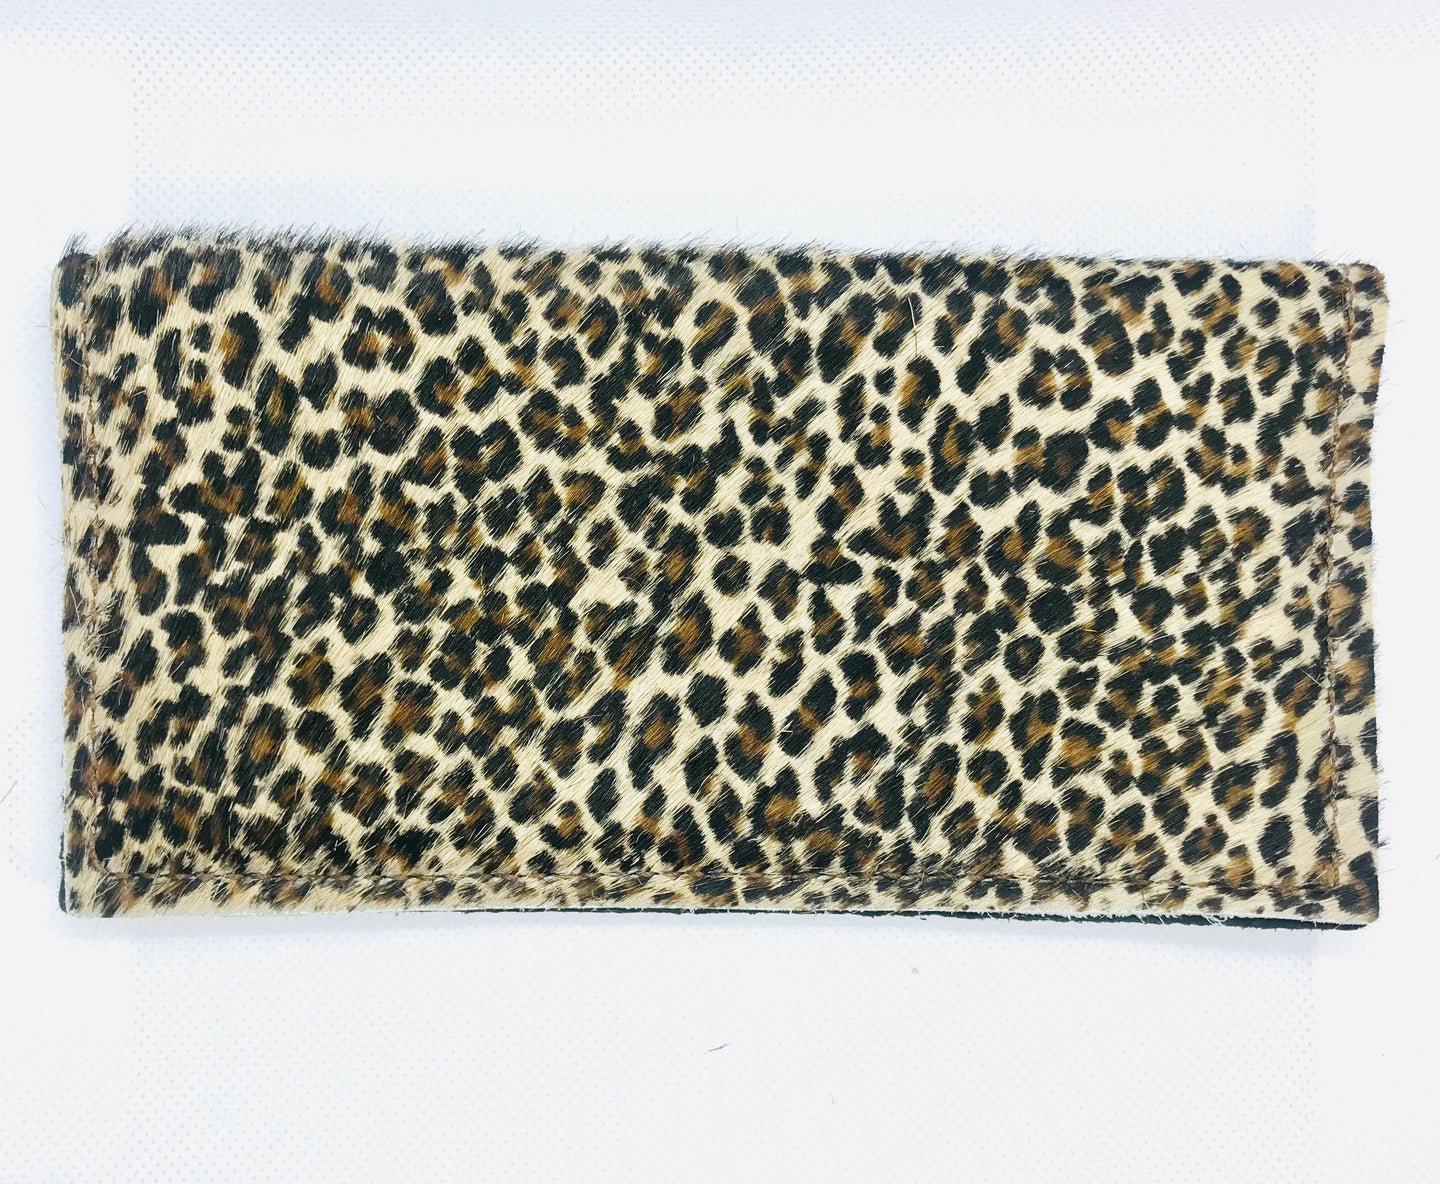 Hair-On Mini Leopard Wallet